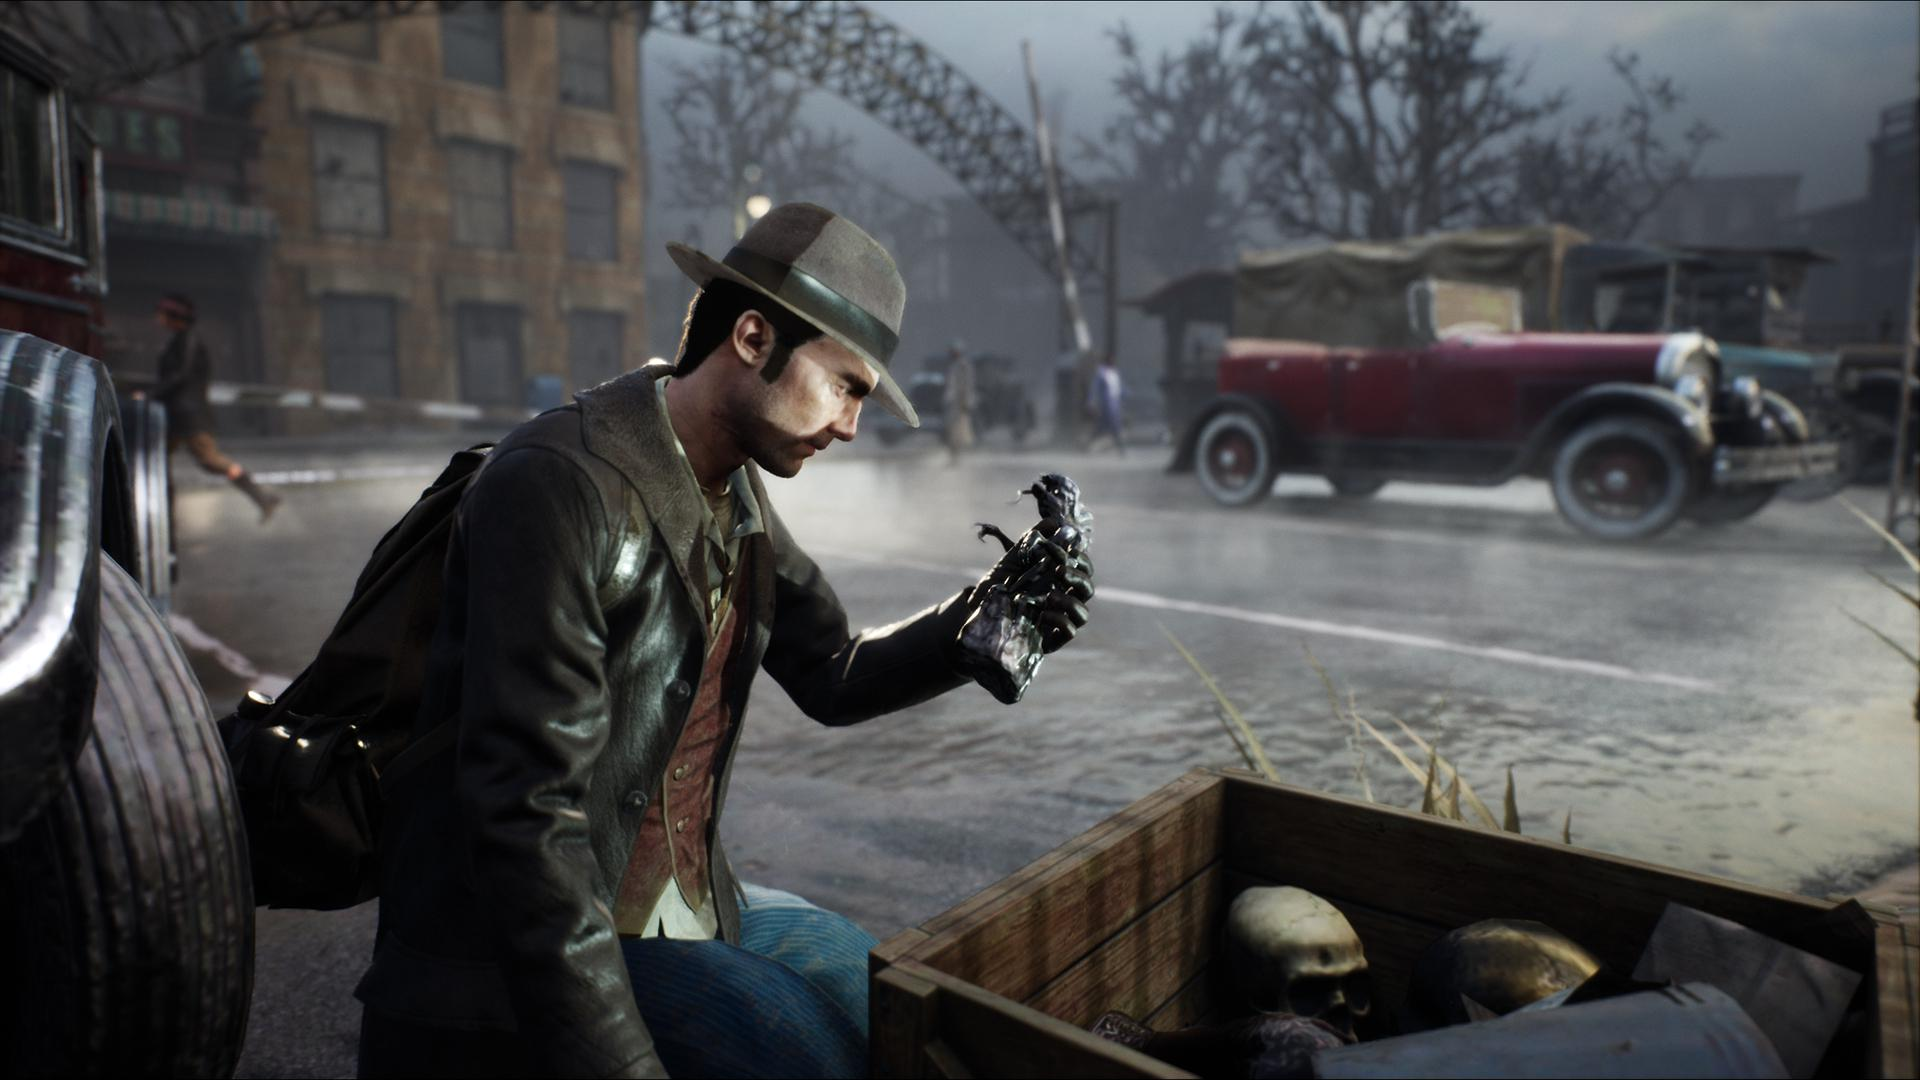 The Sinking City Release Date Pushed Back to June th